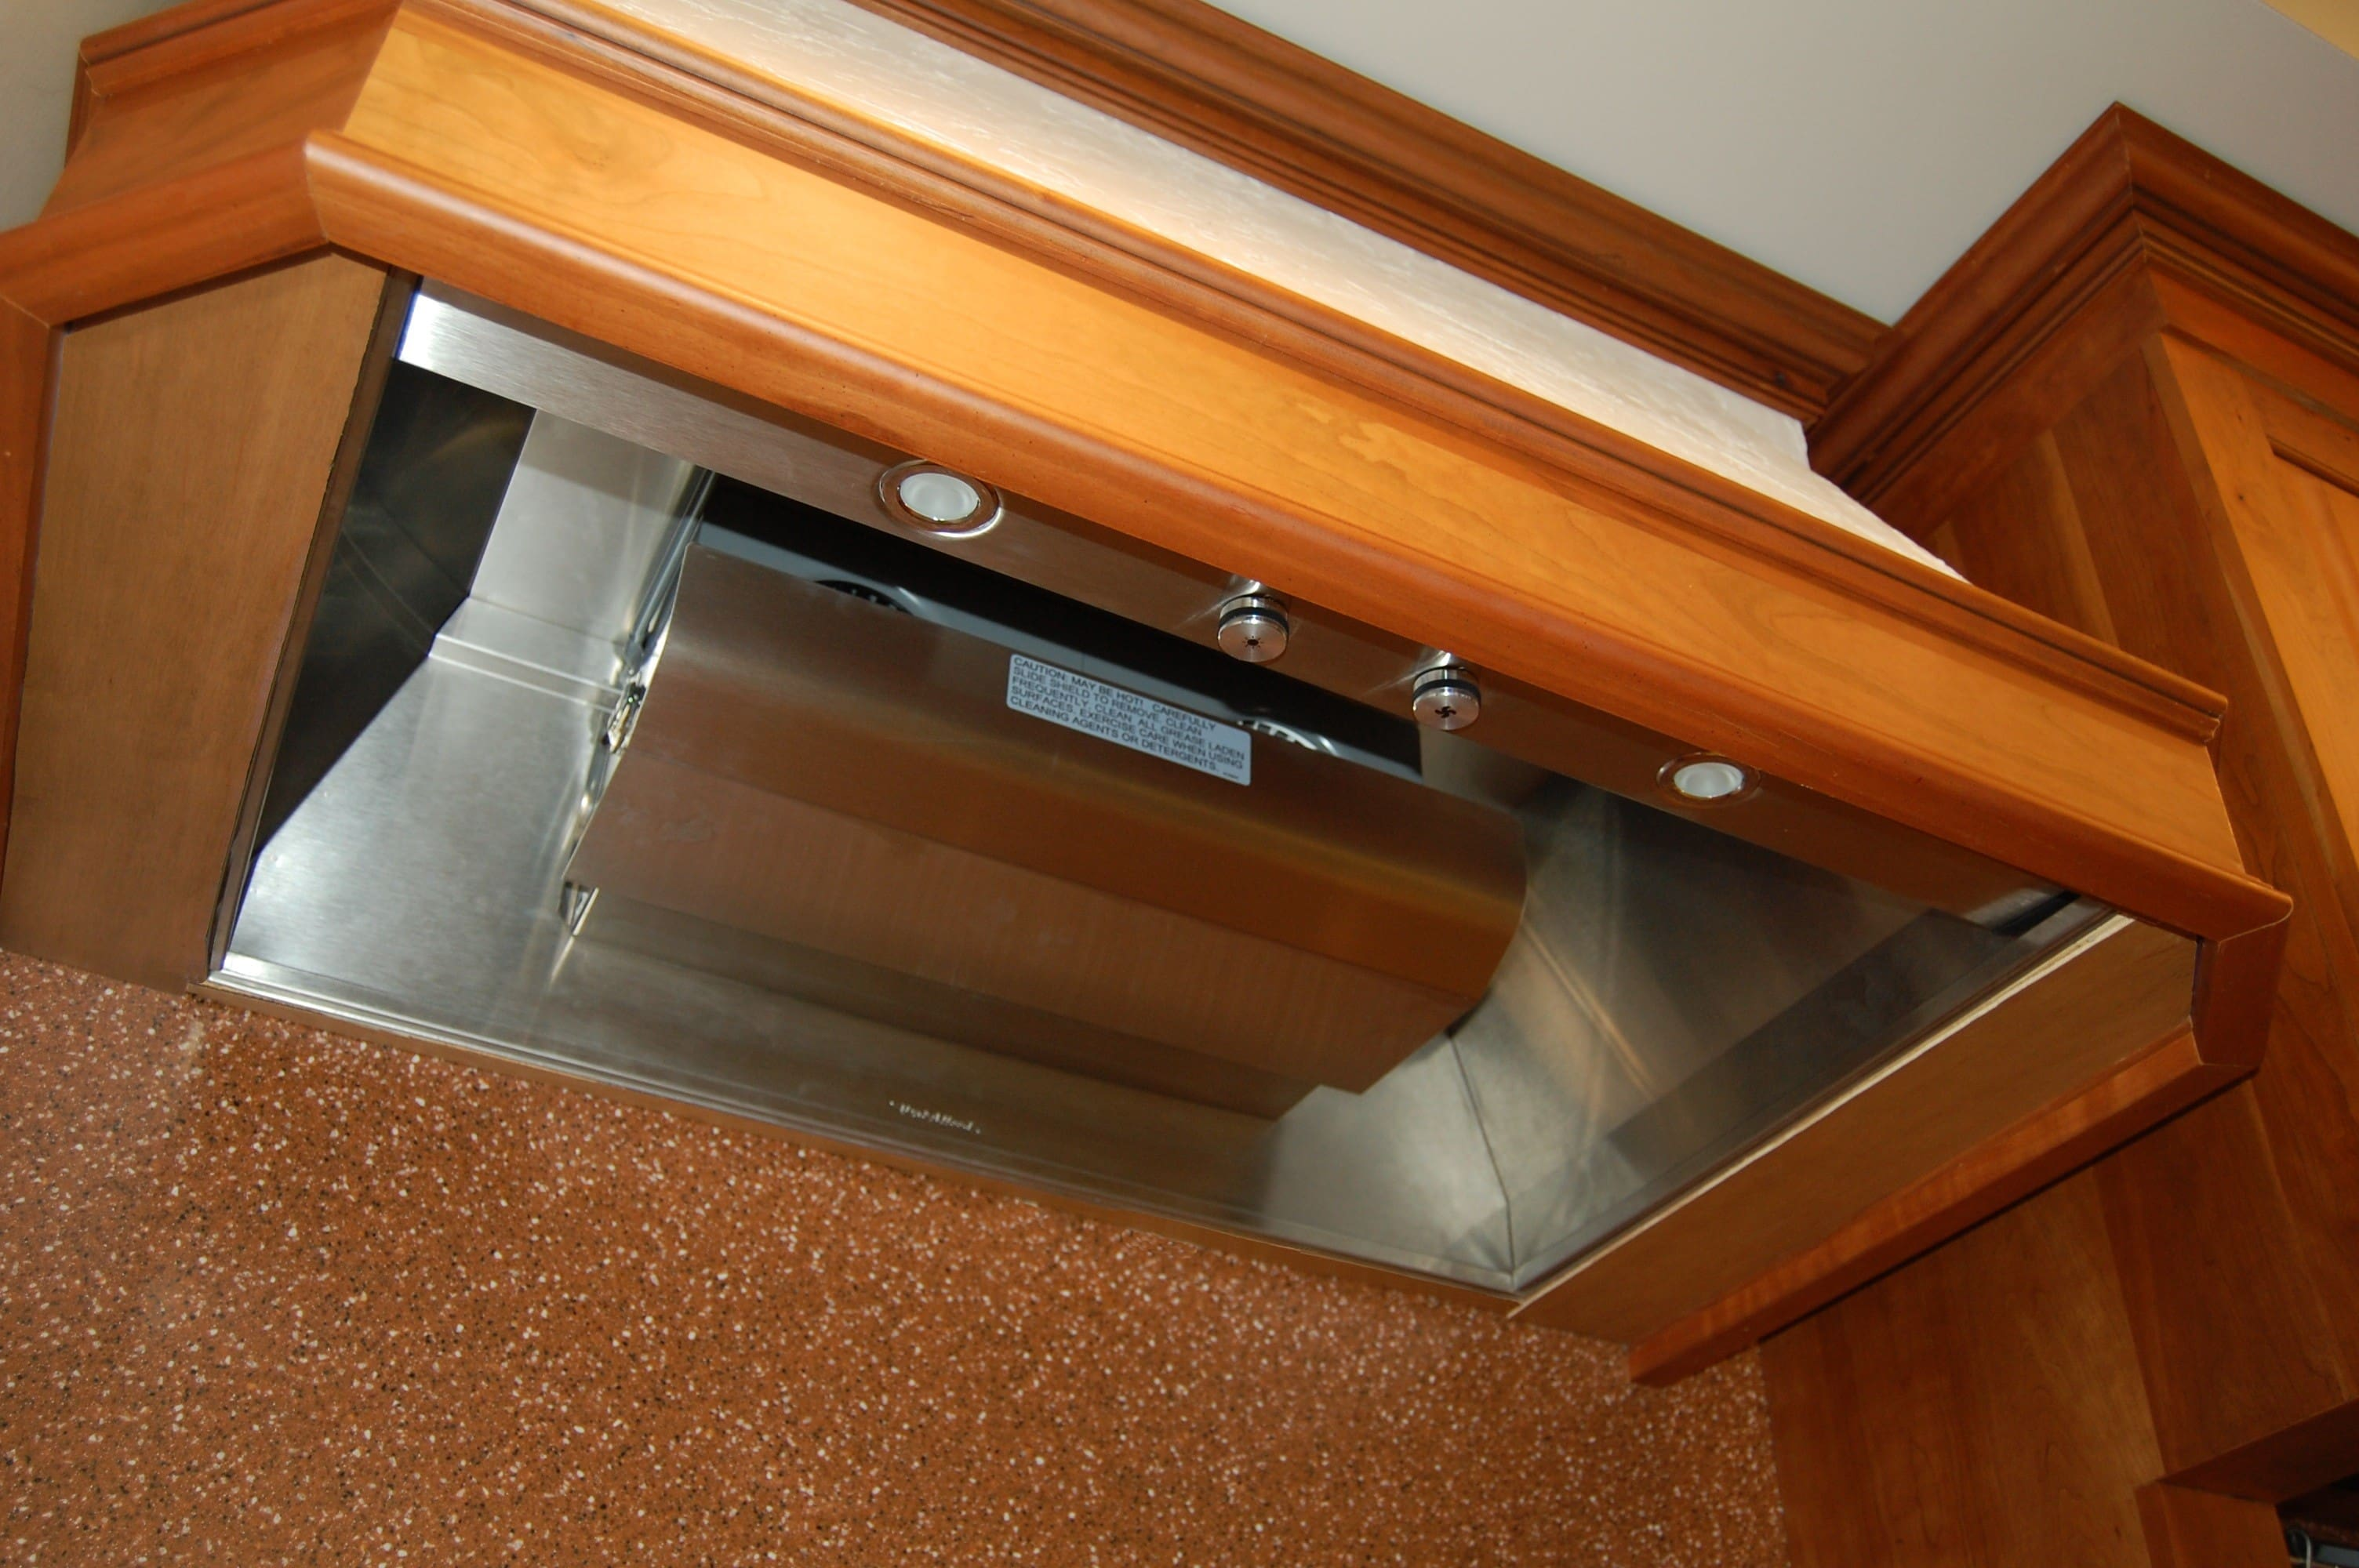 Vent A Hood Bh346psldss Wall Hood Liner With 900 Cfm Magic